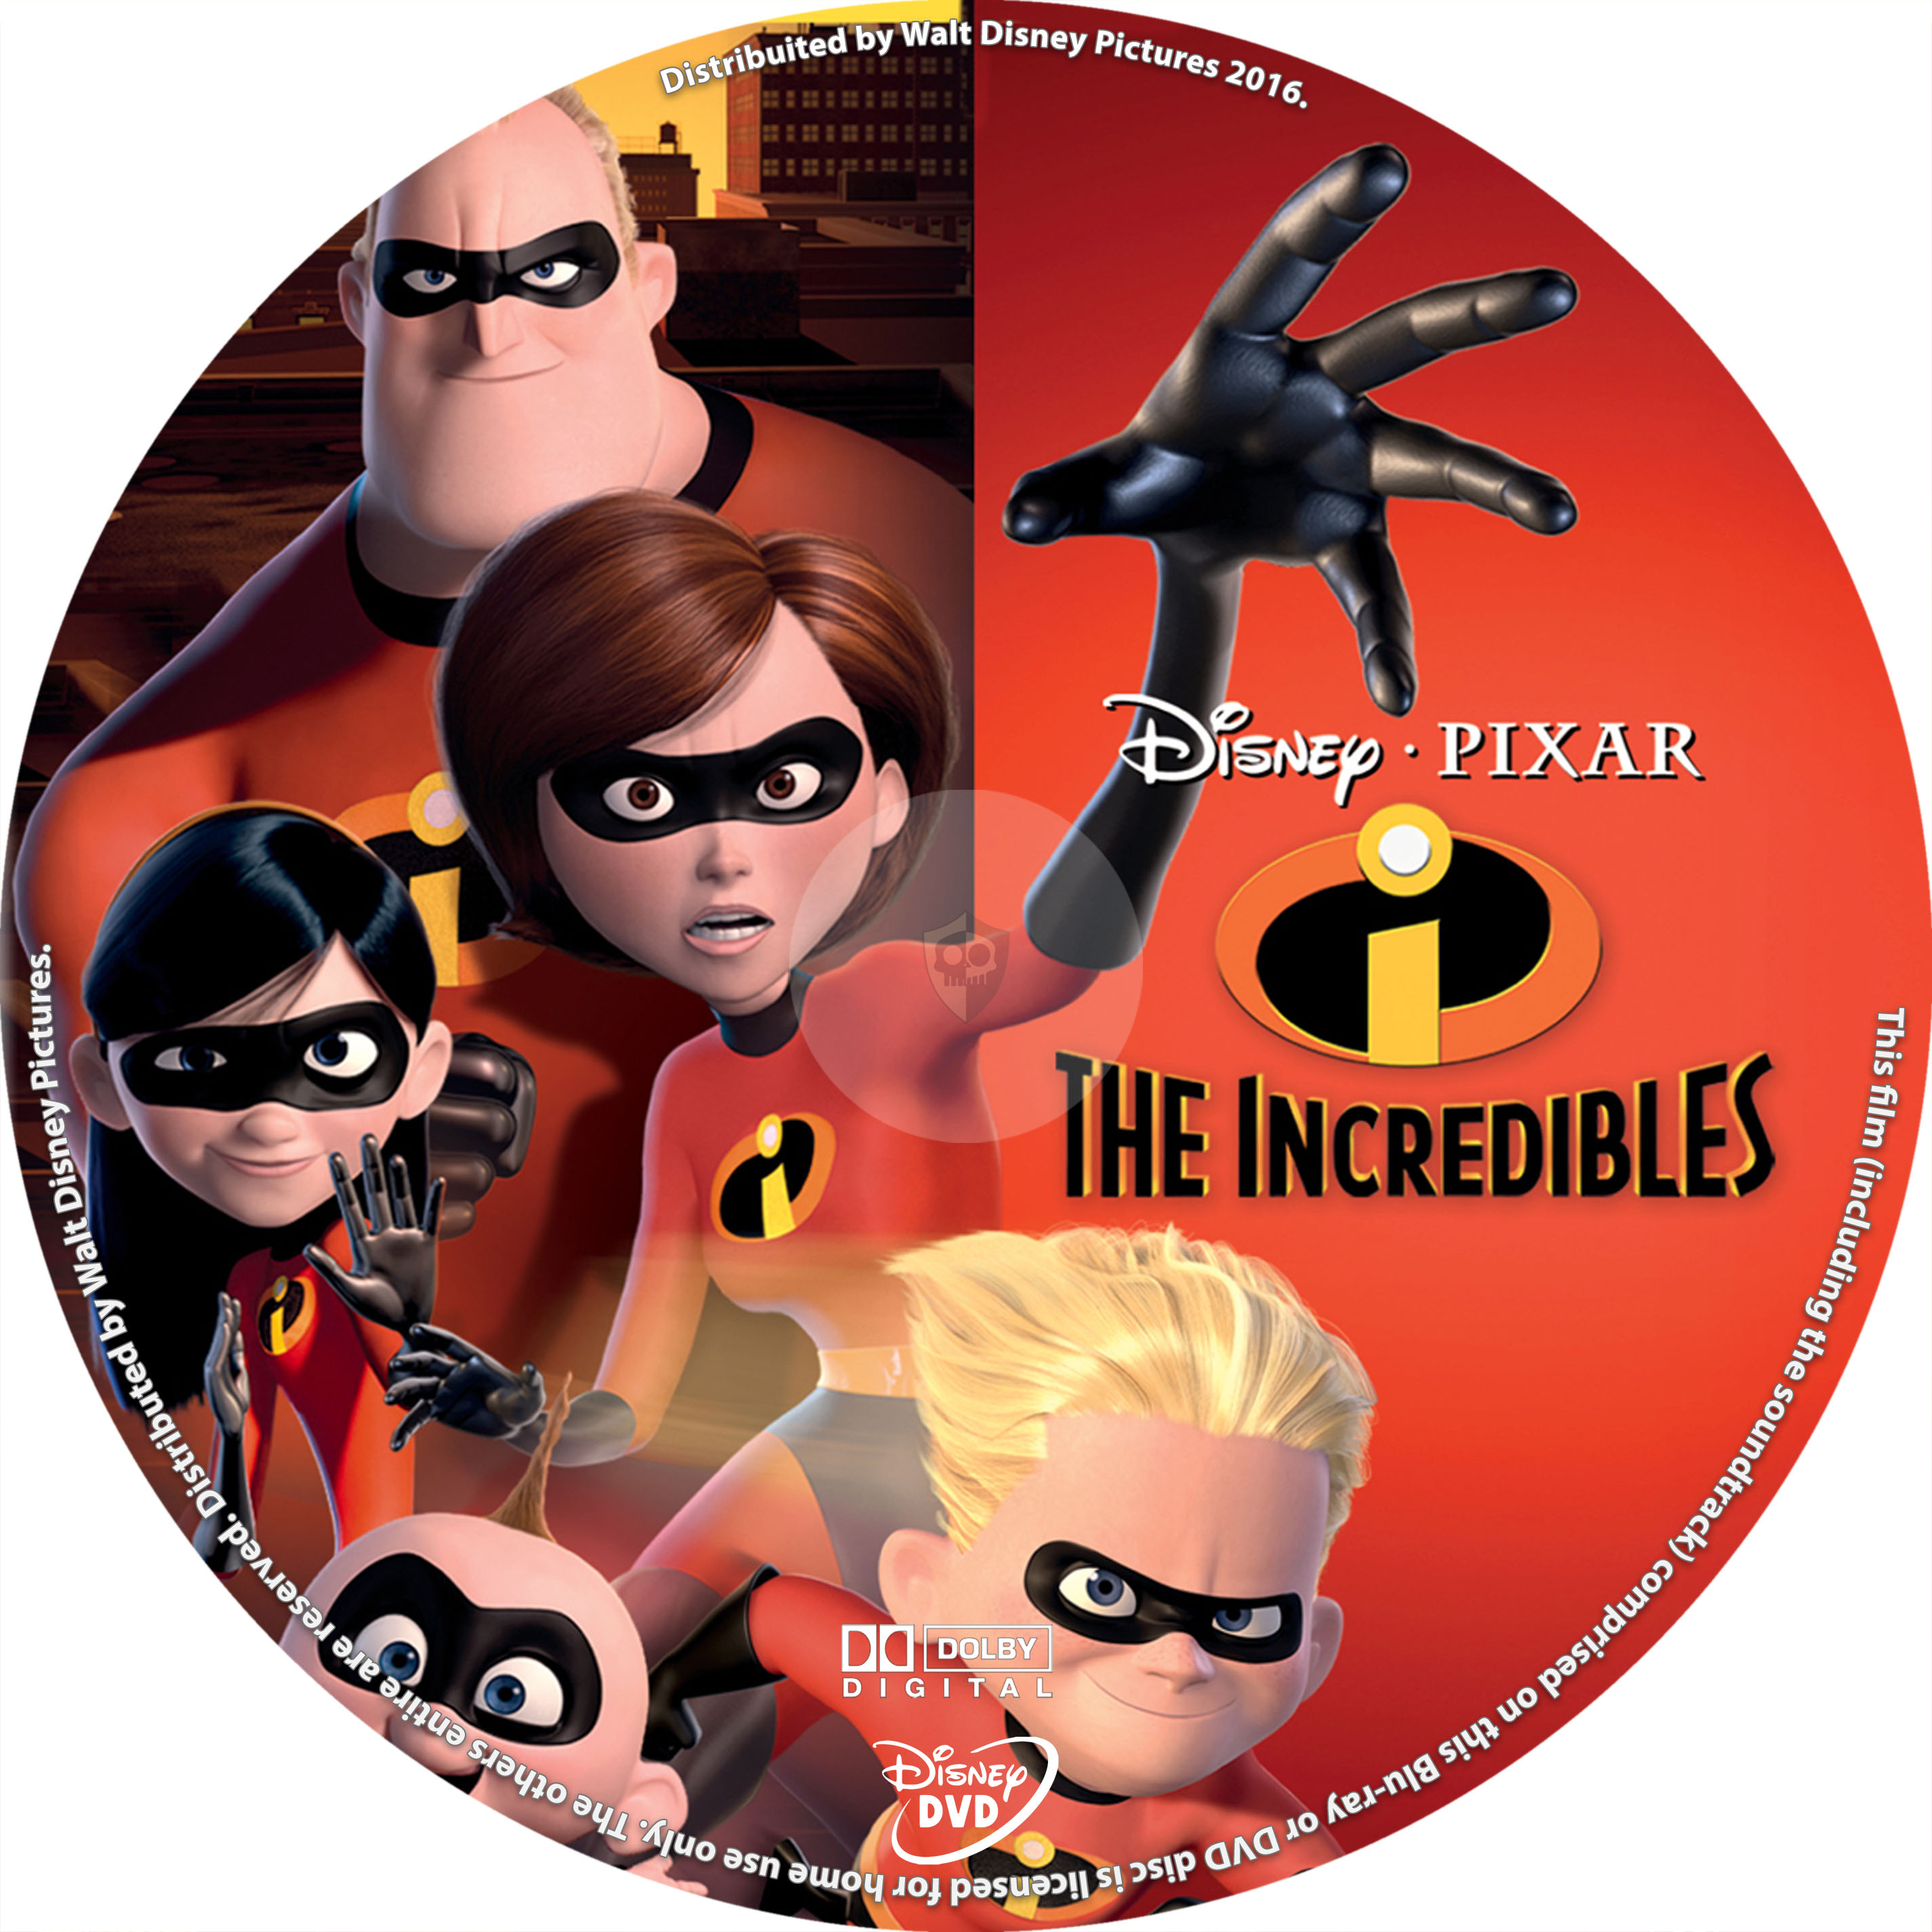 COVERS BOX SK ::: The Incredibles (2004) - high quality DVD